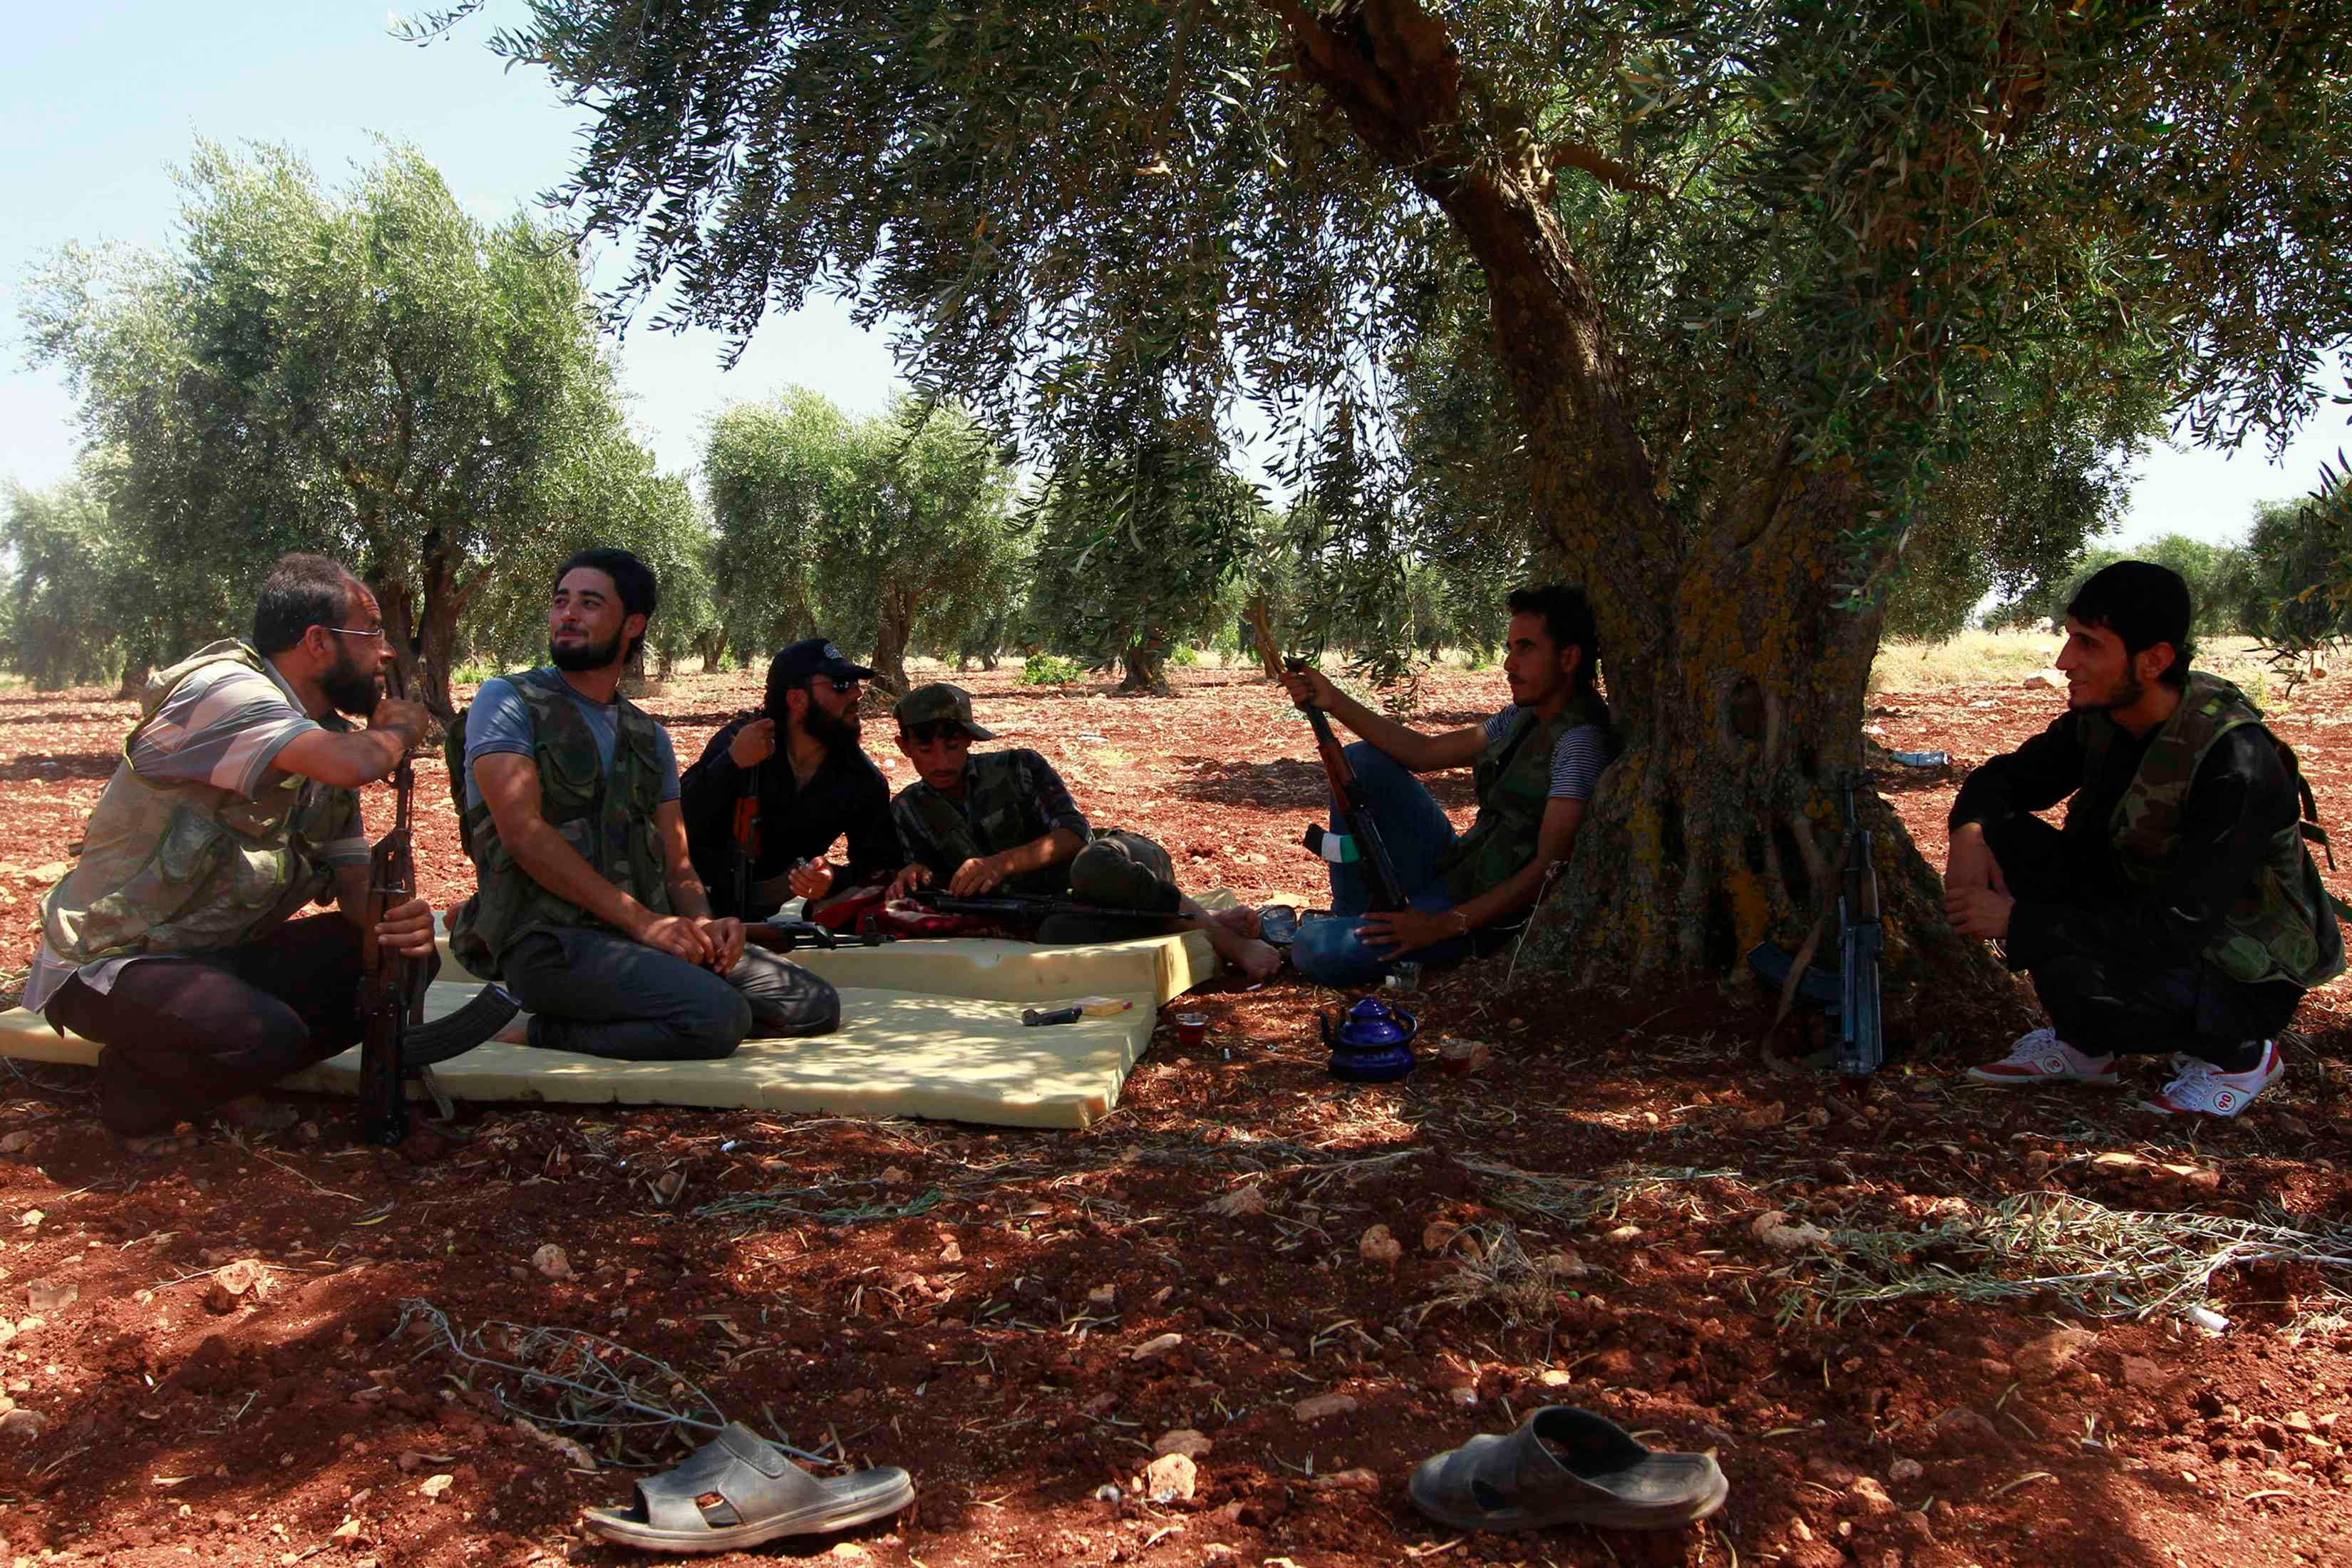 Free syrian army's fight continues